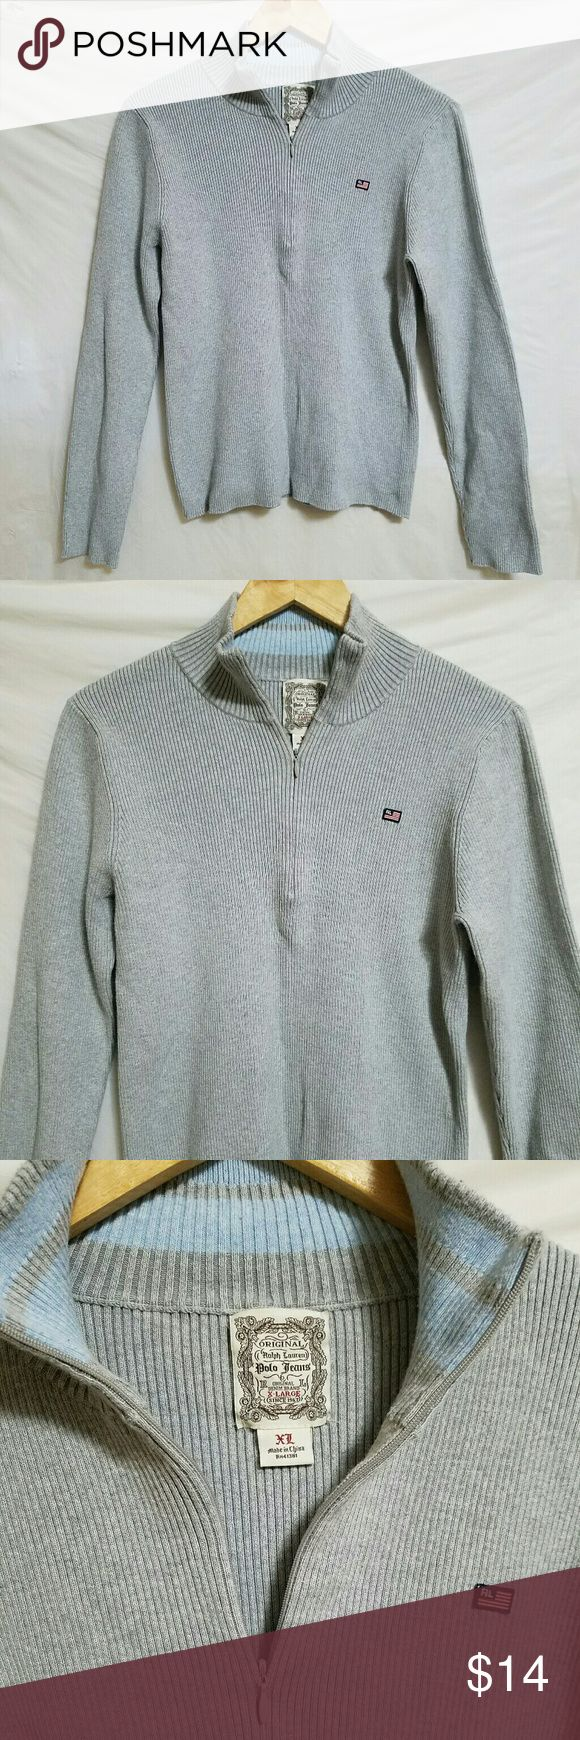 Vintage RL Polo Jeans 3/4 zip pullover Ralph Lauren Polo Jeans ribbed pullover. Excellent condition. RL American flag symbol. About 24 inches long from the top of the shoulder. Baby blue stripes inside neck. Polo by Ralph Lauren Sweaters